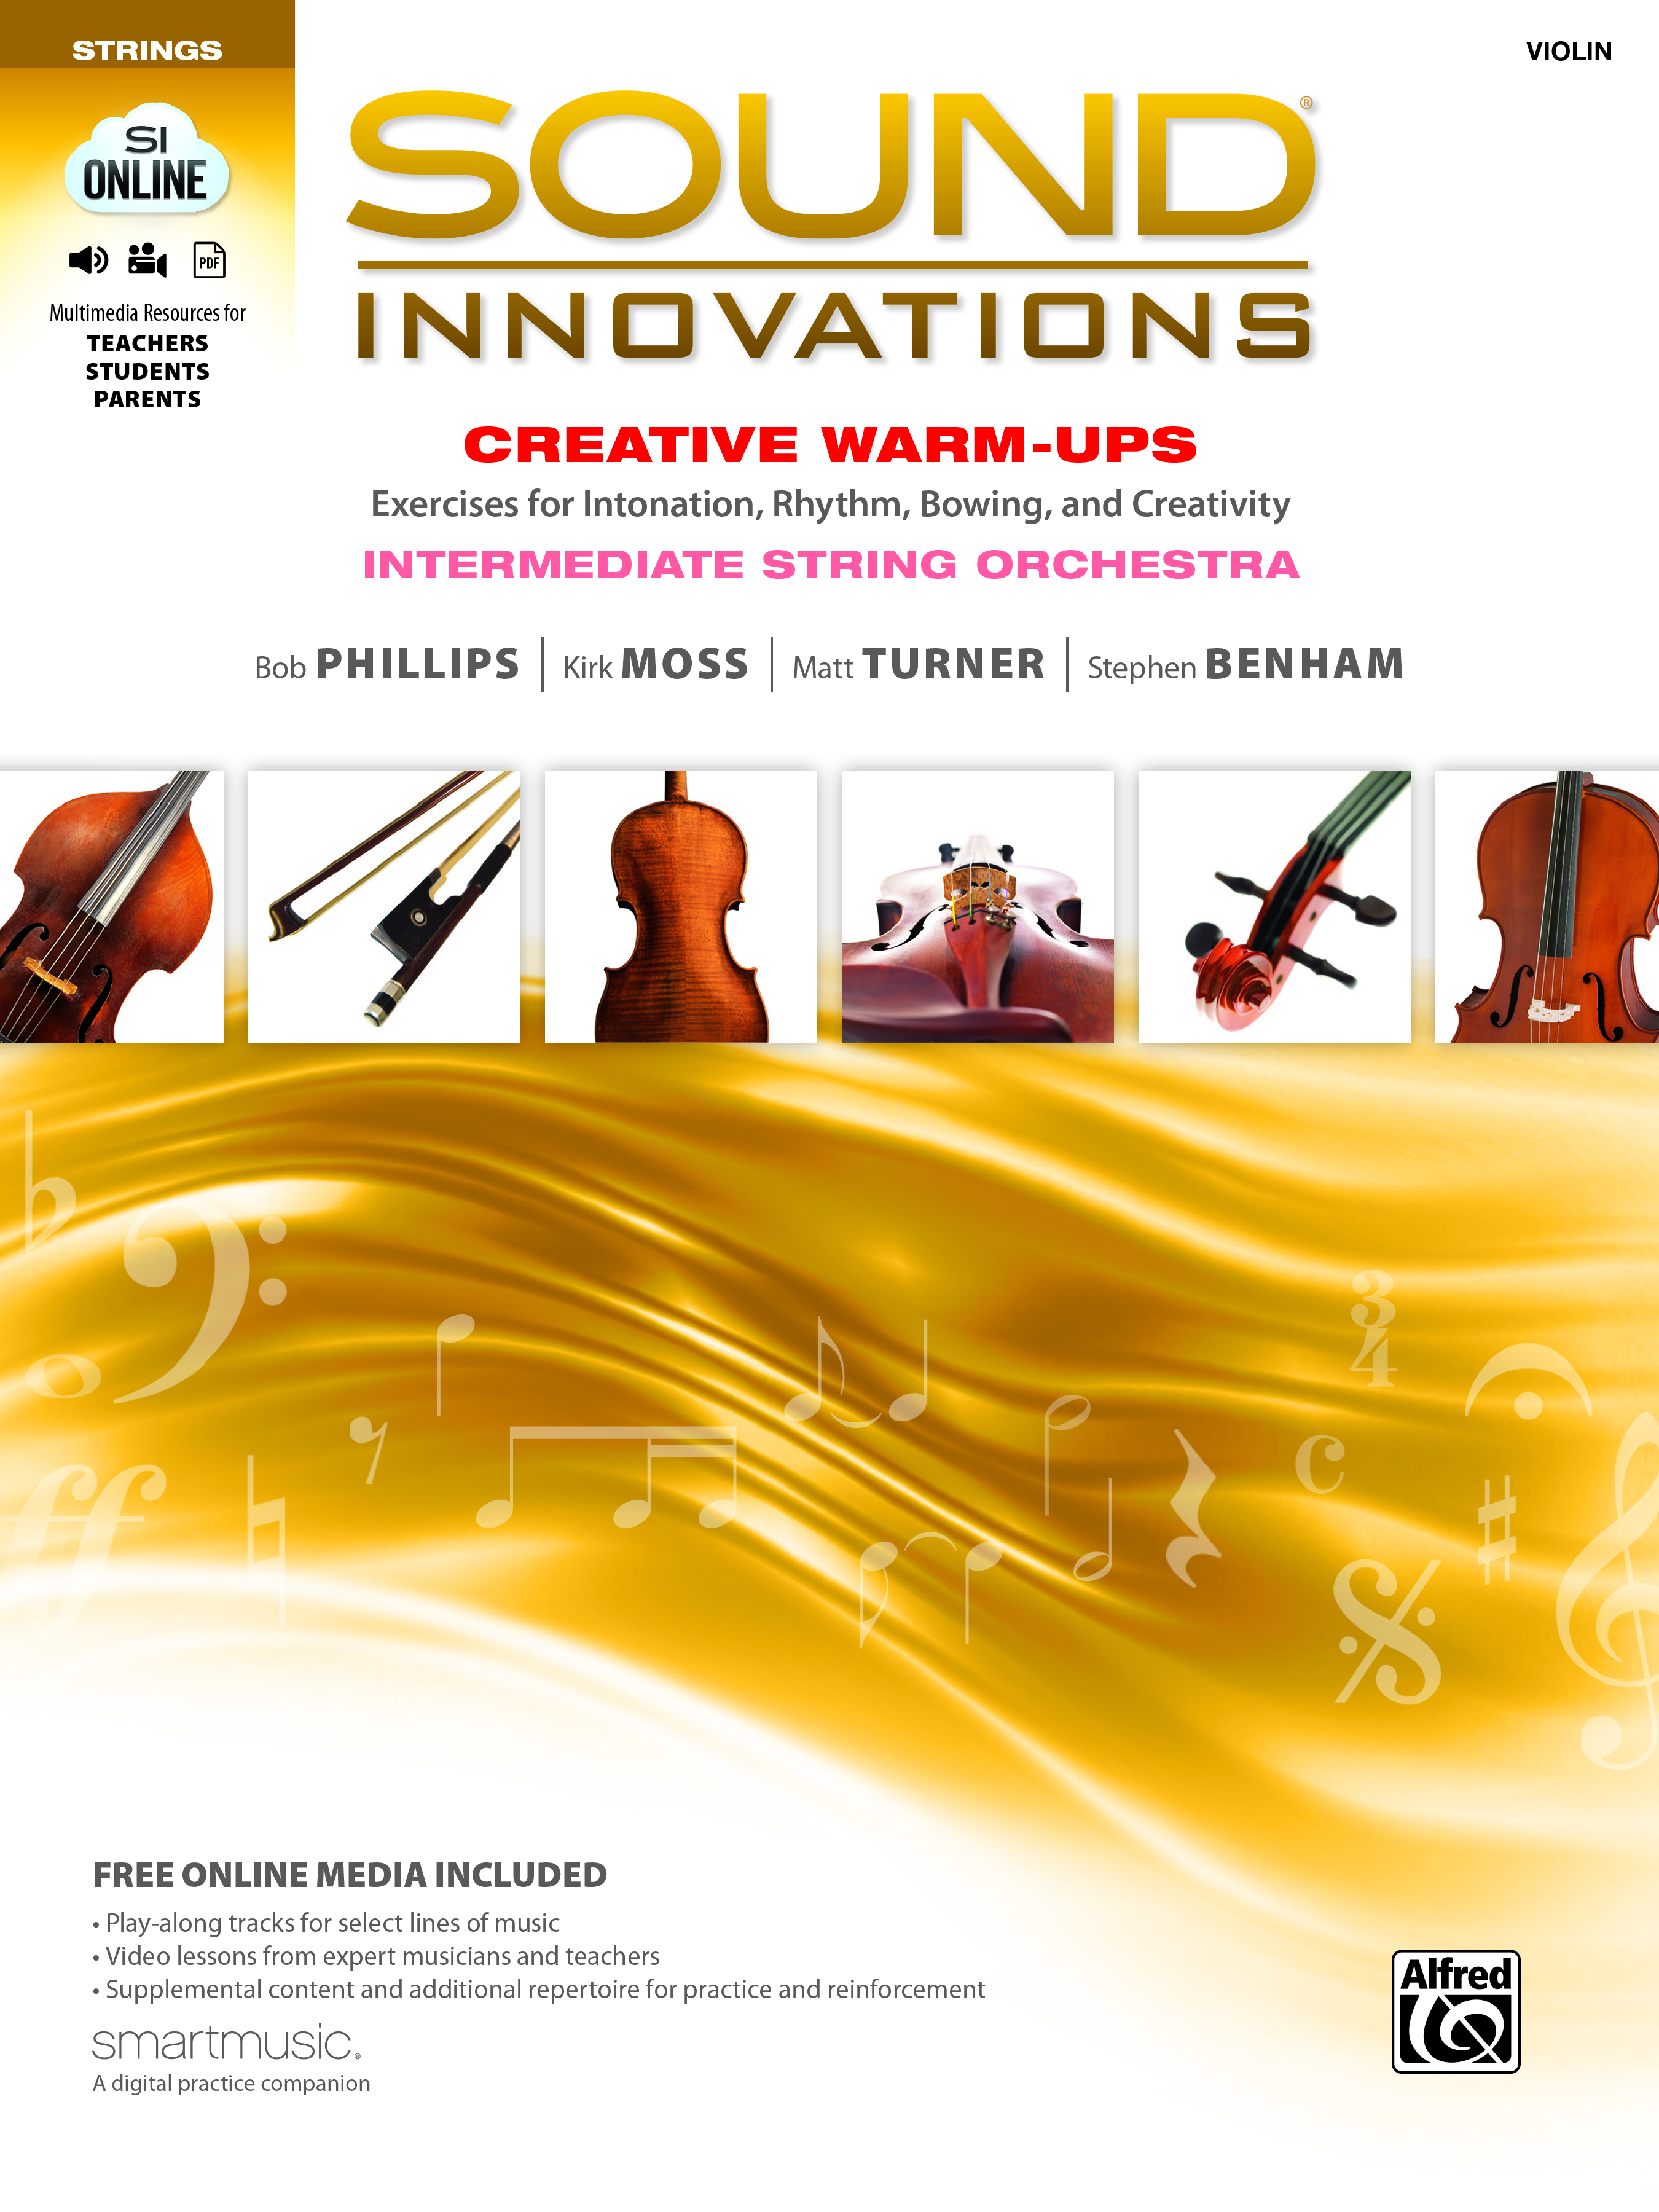 Sound Innovations: Creative Warm-Ups